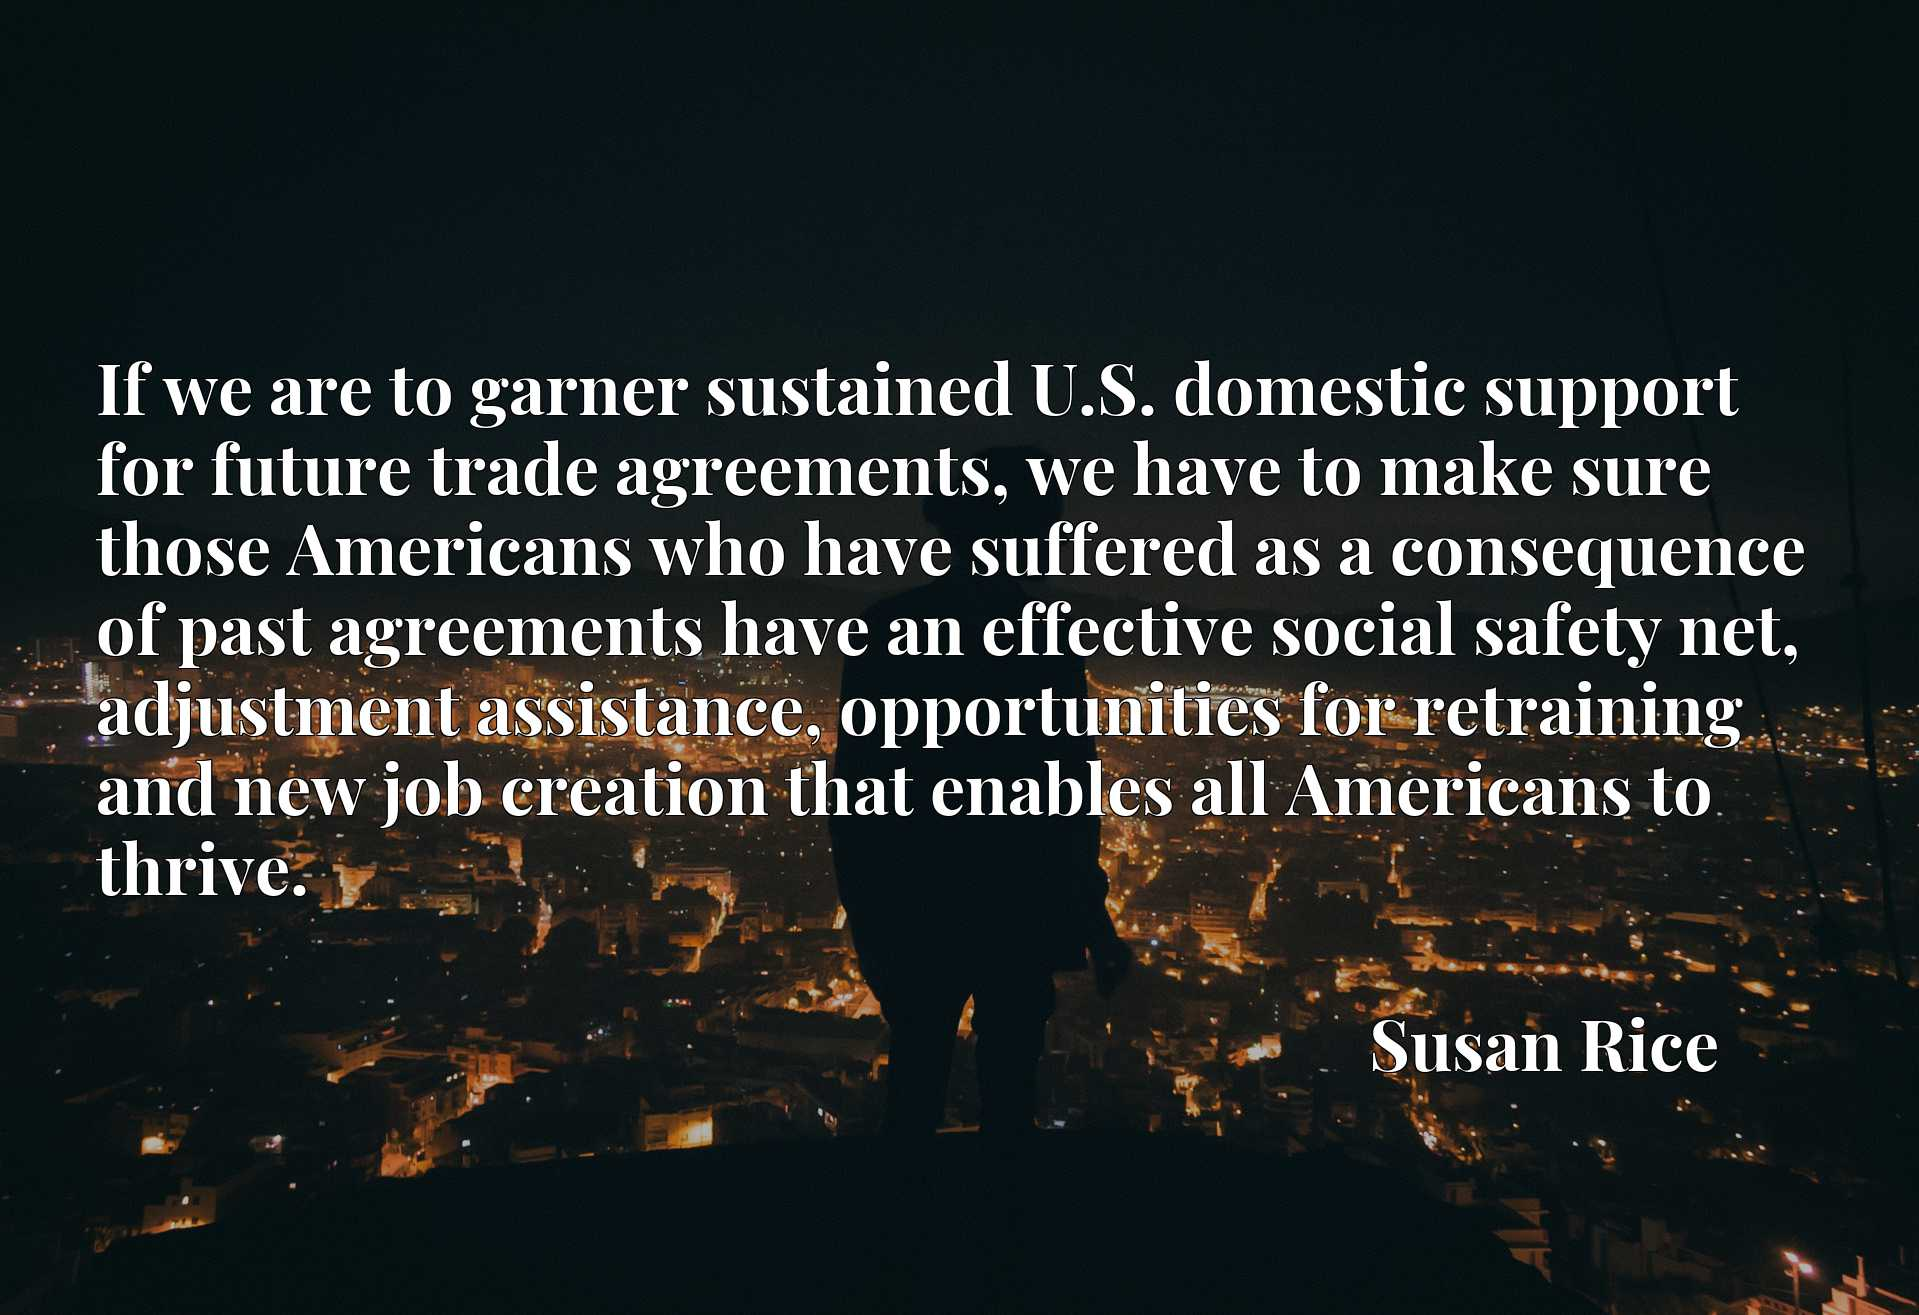 If we are to garner sustained U.S. domestic support for future trade agreements, we have to make sure those Americans who have suffered as a consequence of past agreements have an effective social safety net, adjustment assistance, opportunities for retraining and new job creation that enables all Americans to thrive.